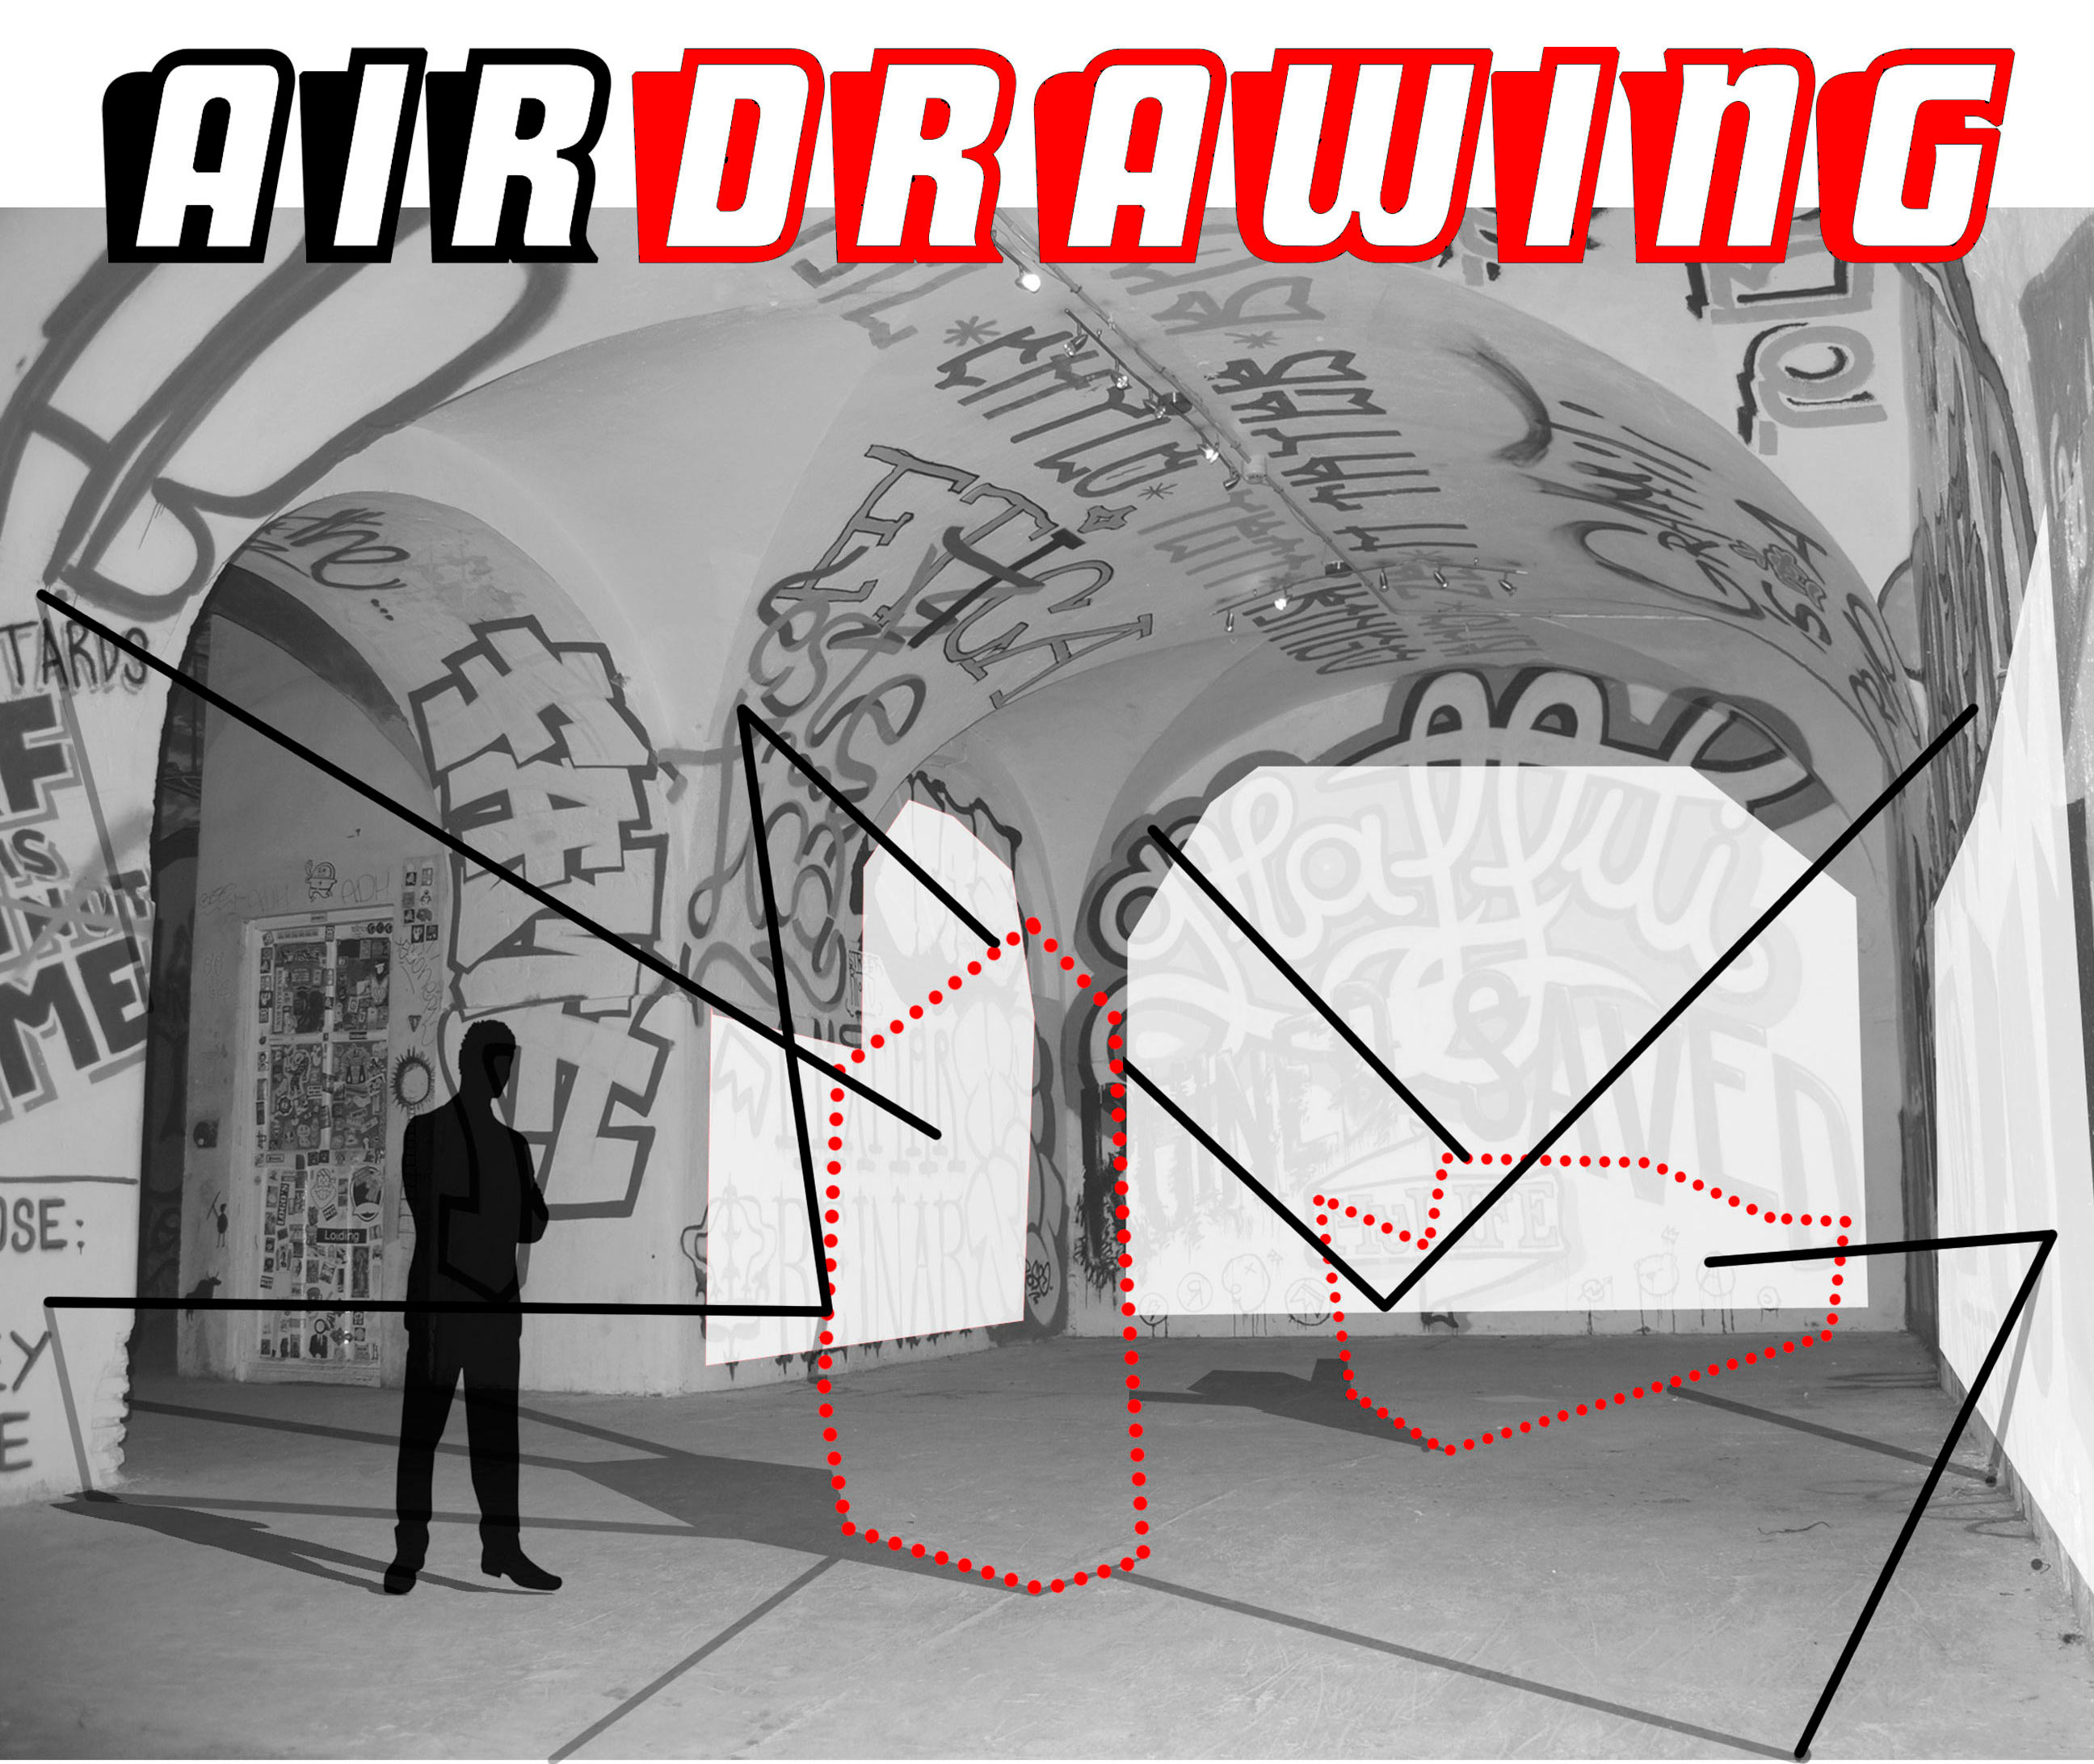 AIRDRAWING